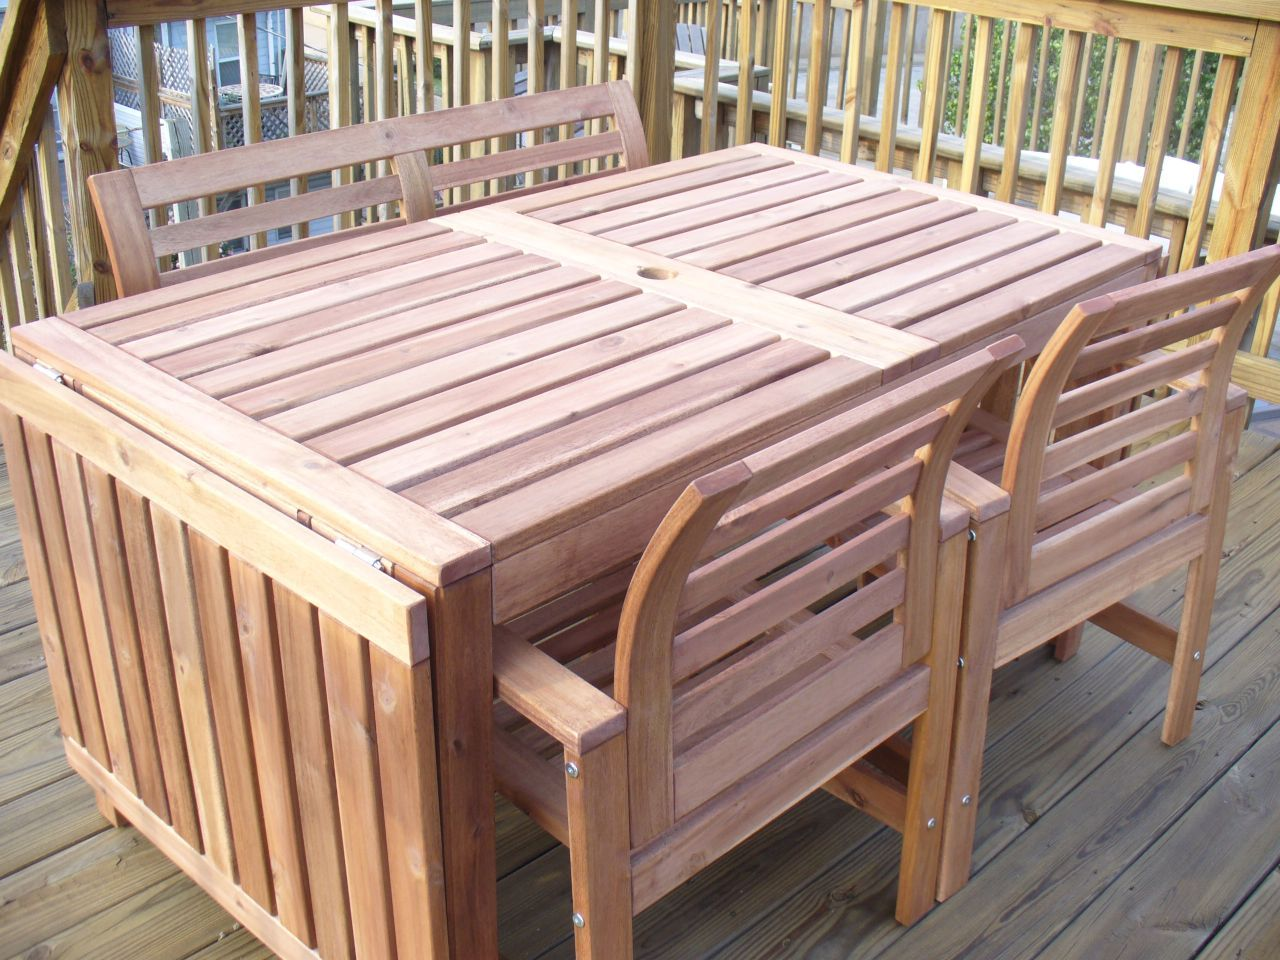 Staining The Applaro Outdoor Table From Ikea | Gardening | Pinterest | Outdoor  Tables, Backyard And Patios